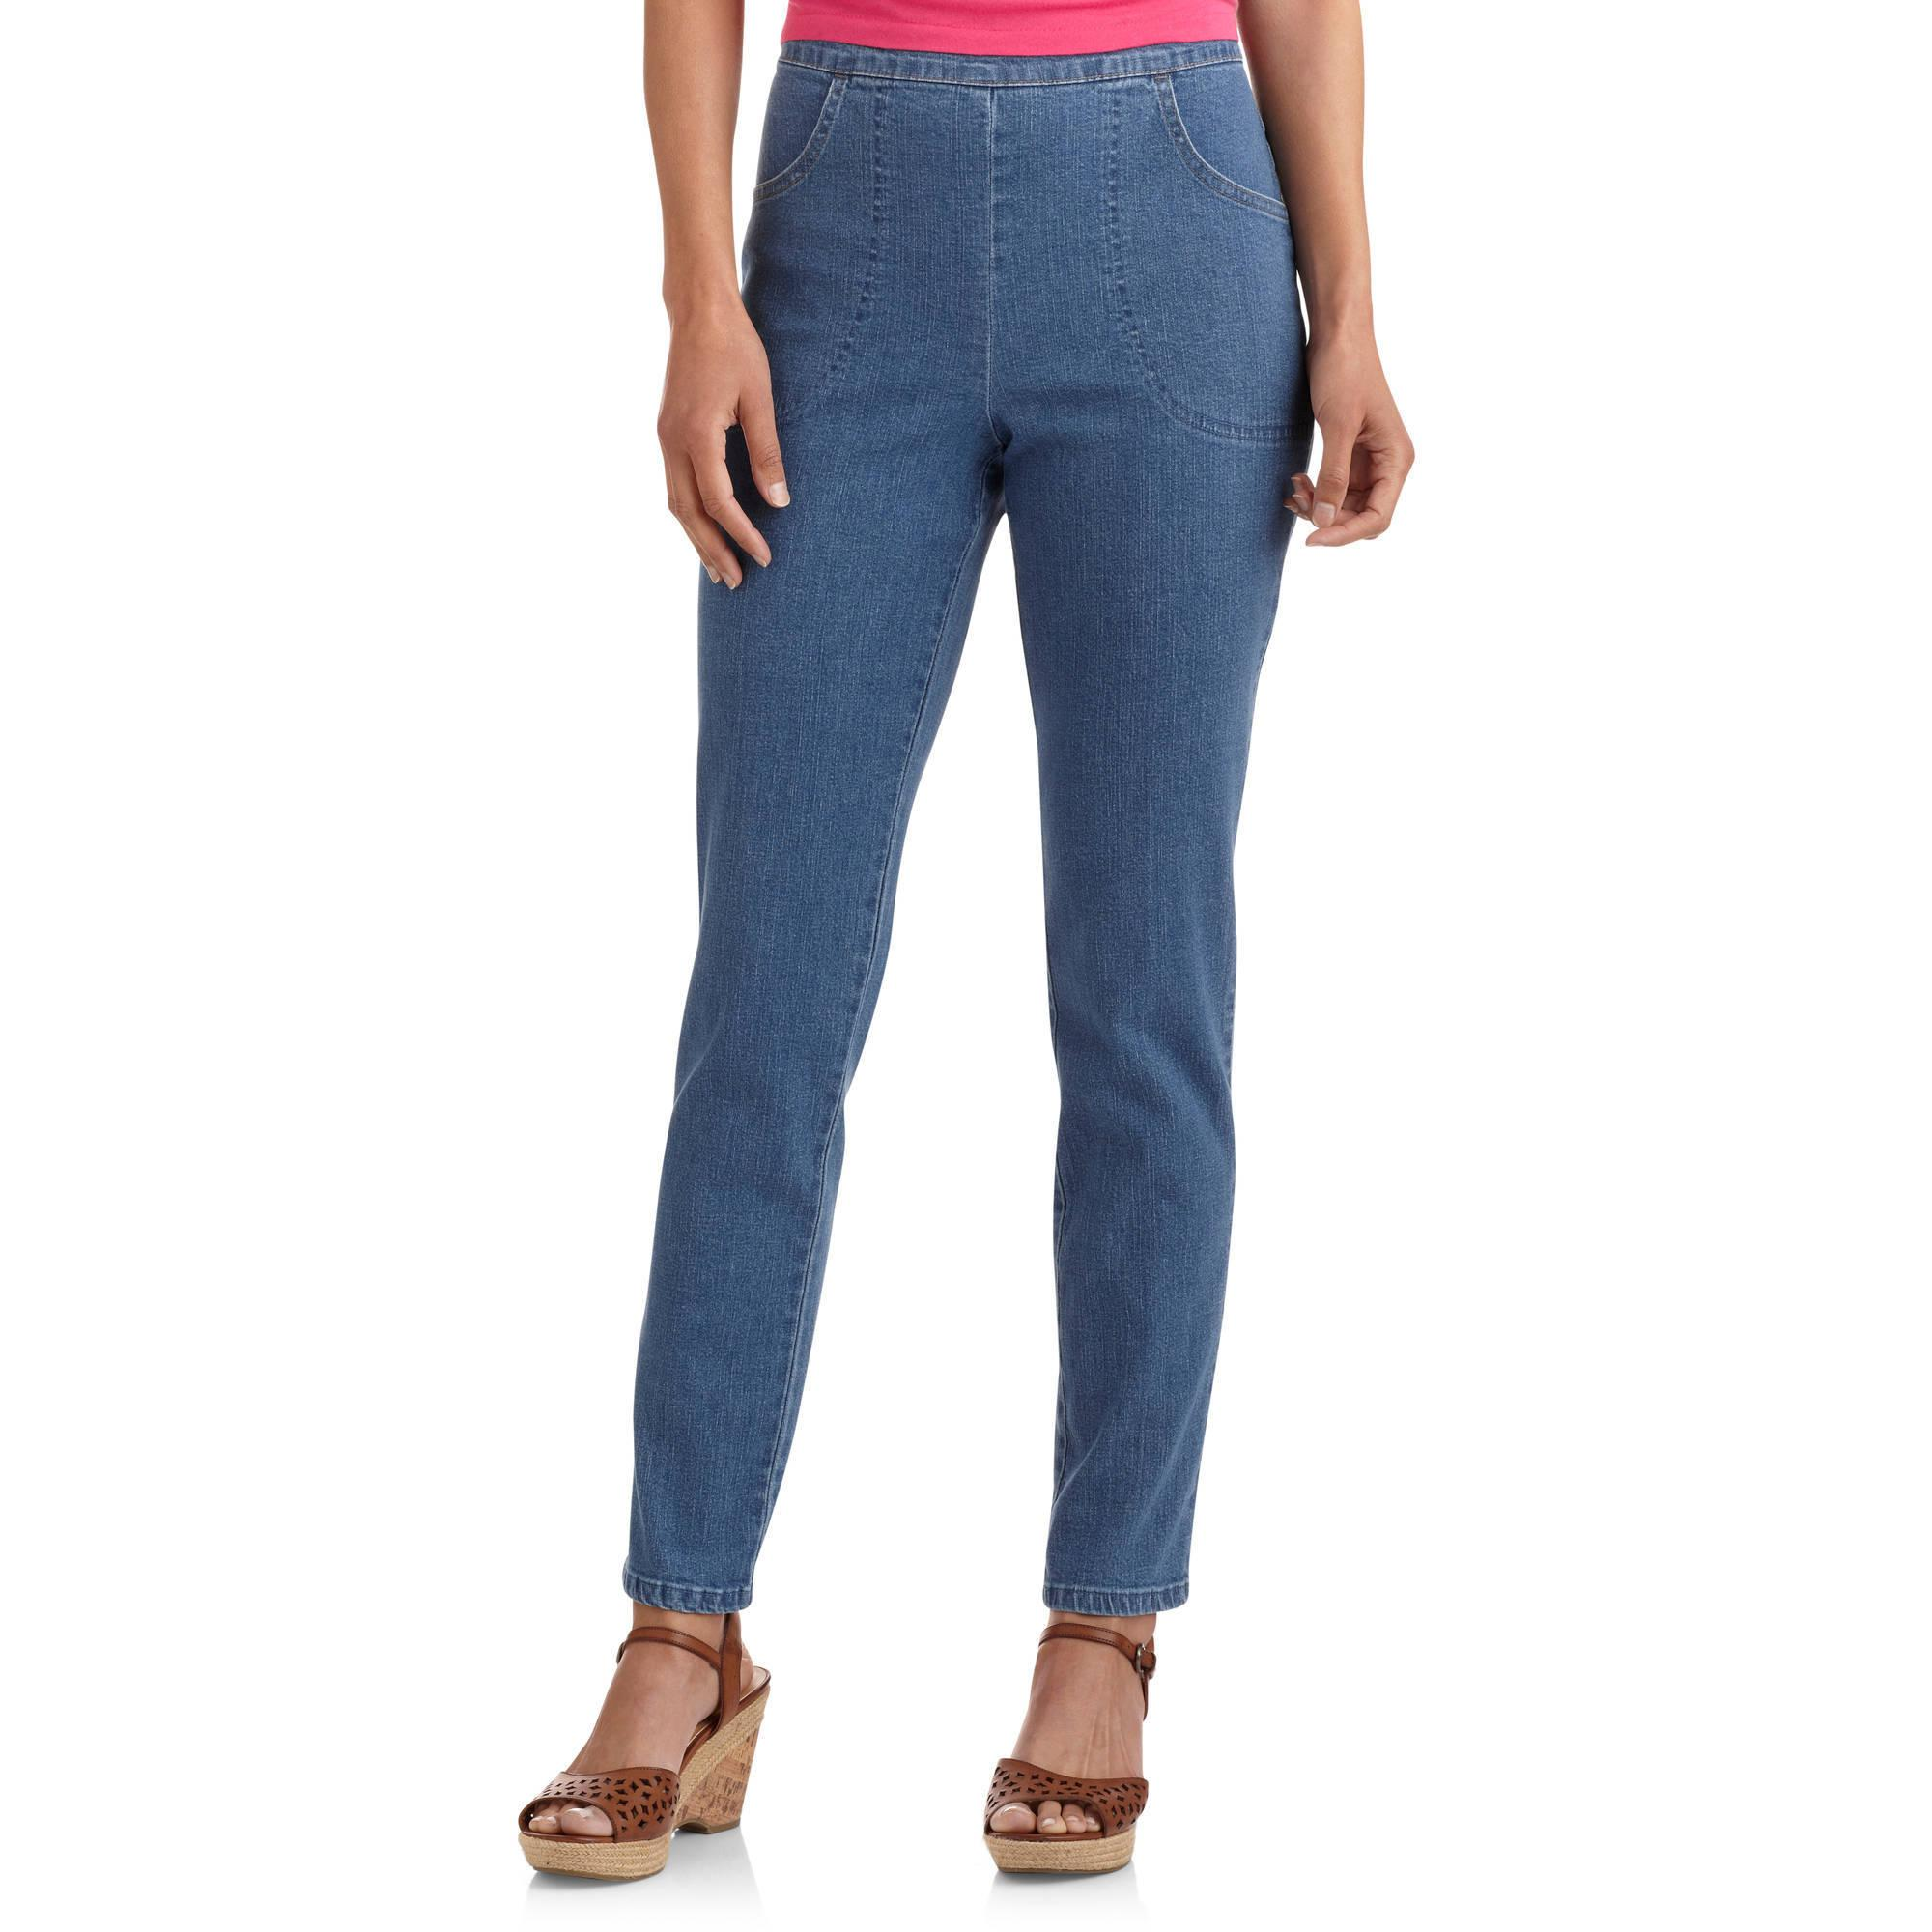 White Stag Women's Flat Front Back Elastic Stretch Denim Pants Available in Regular and Petite